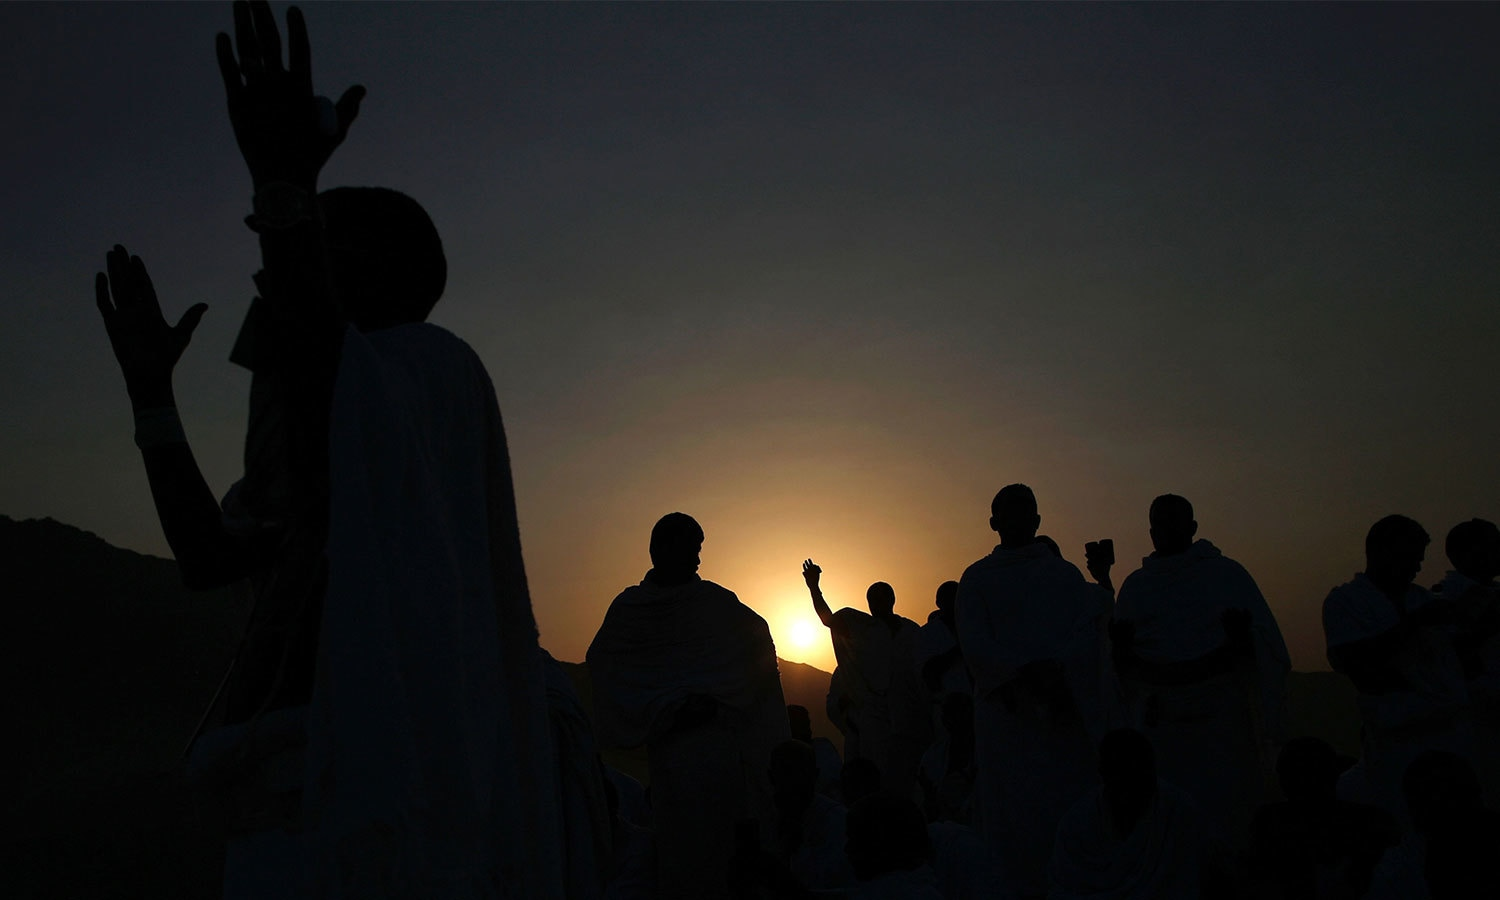 Muslims join one of the Haj rituals on Mount Arafat near Makkah. — AFP